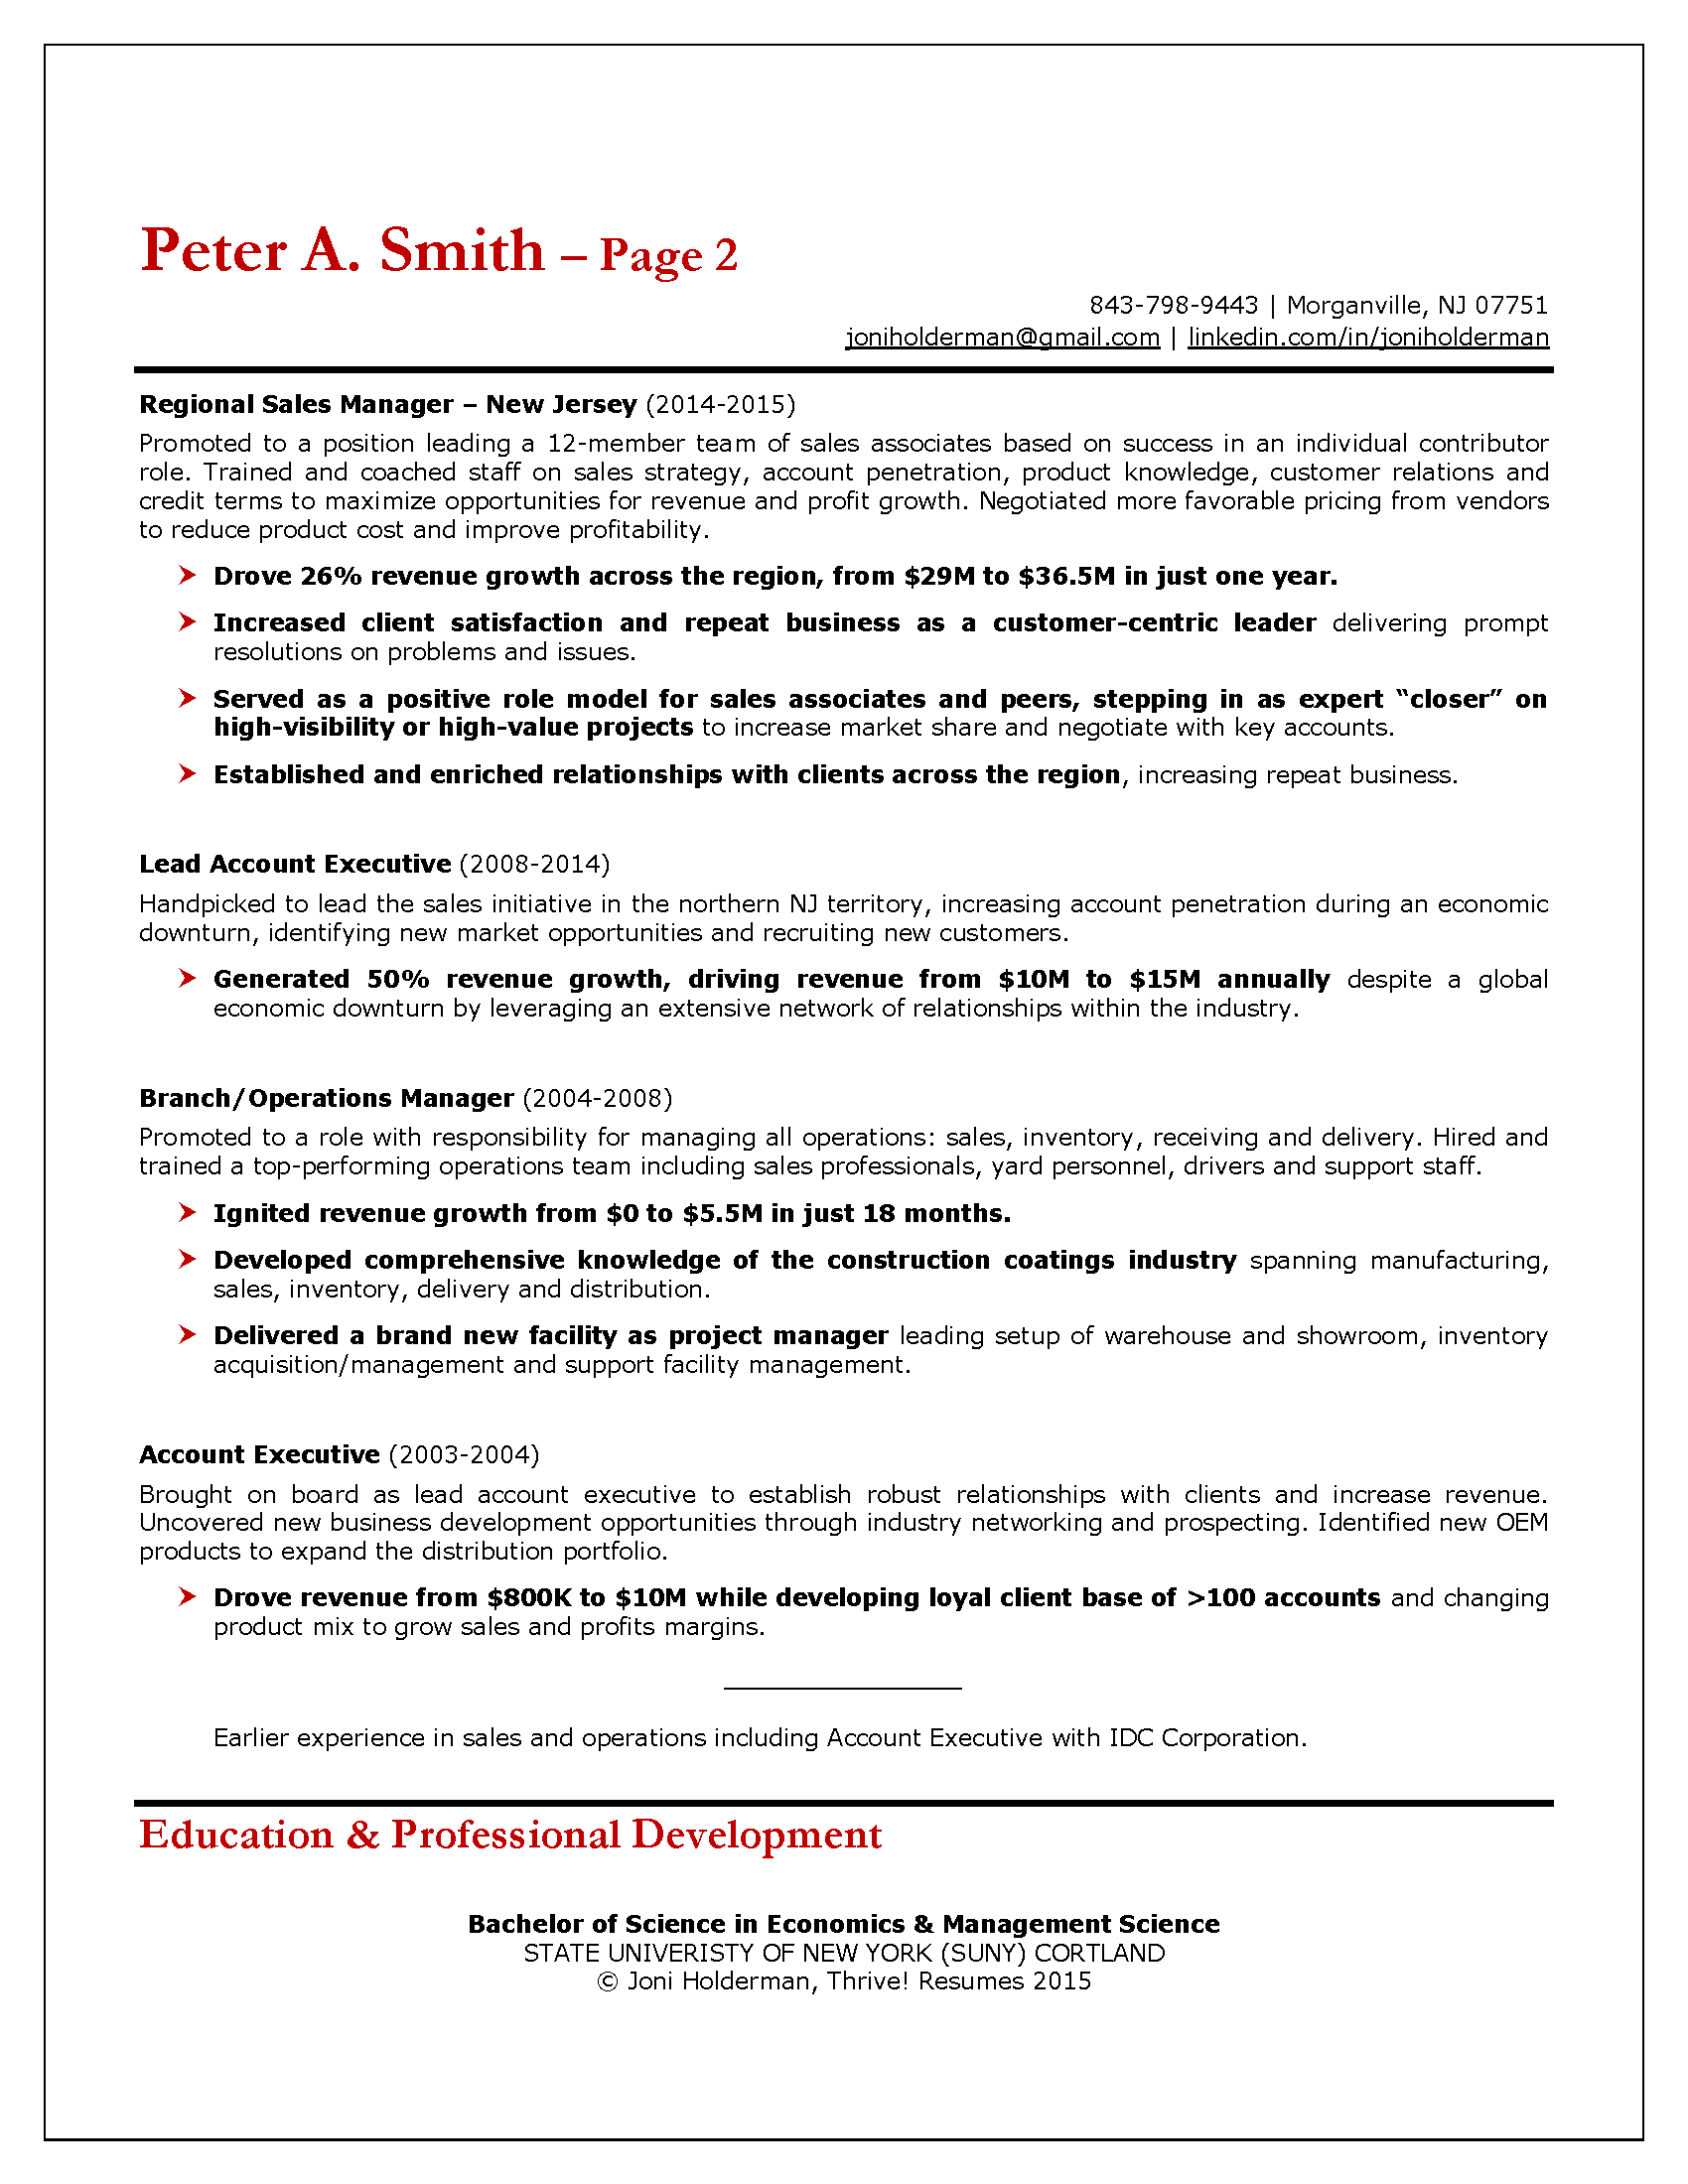 Sales Resume Example with Charts — Thrive! Resumes